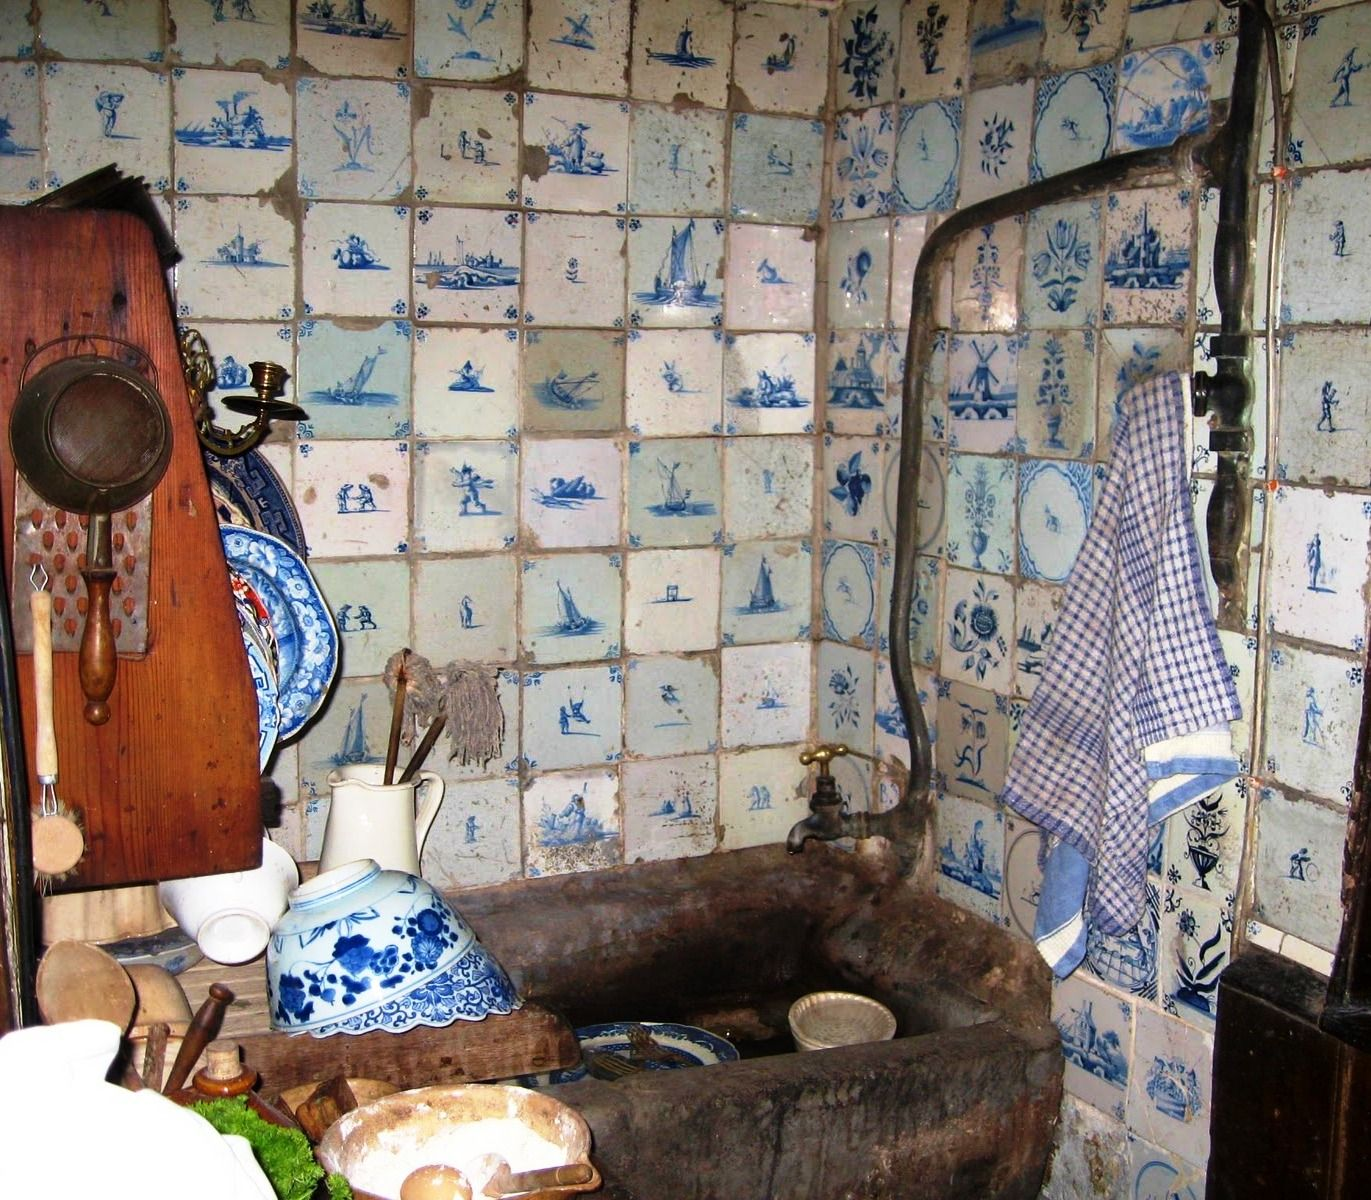 stone kitchen sink Stone Kitchen sink and old Delft tiles Dennis Severs House 18 Folgate st Spitalfields London